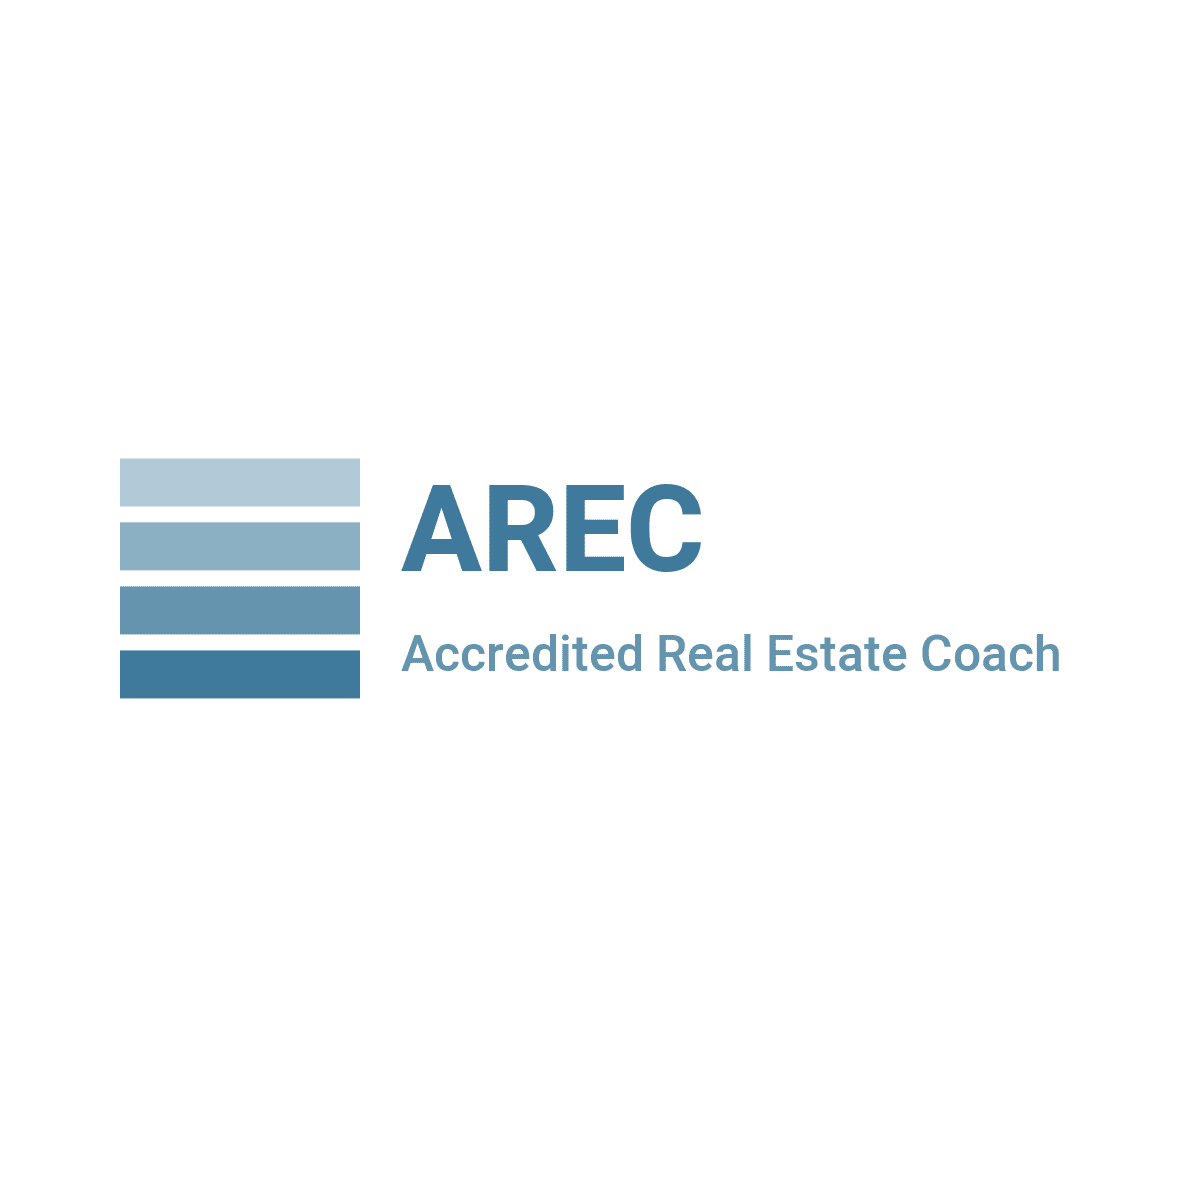 Accredited Real Estate Coach image